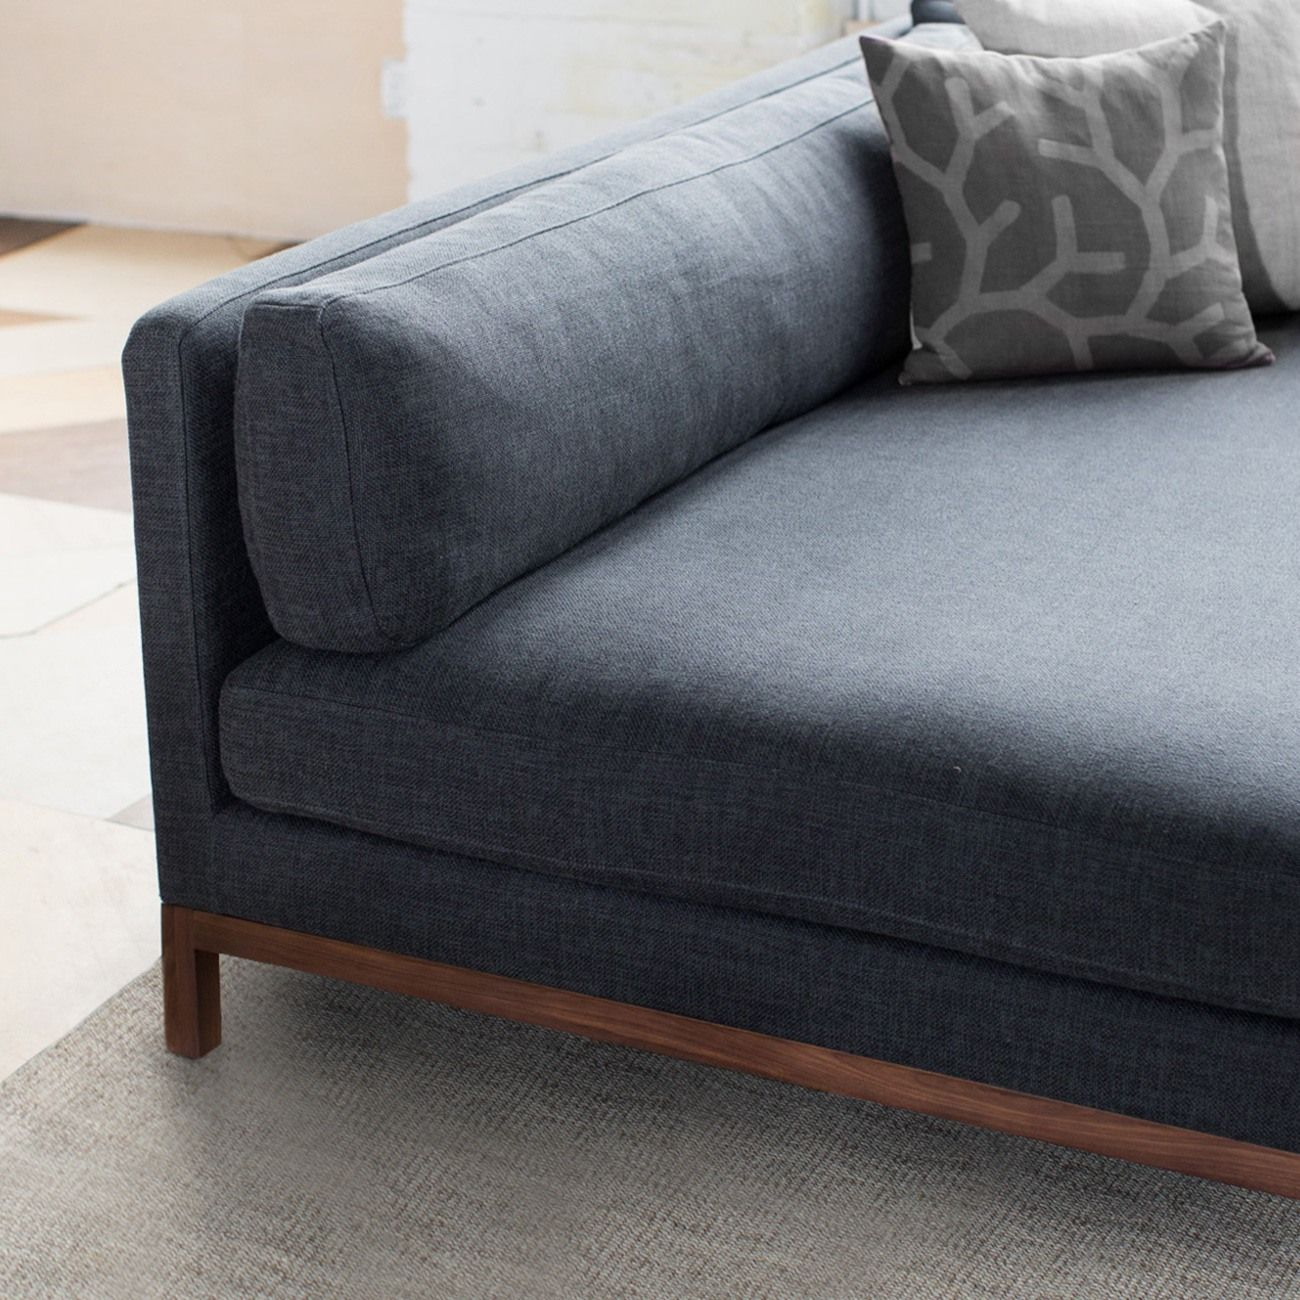 Interior Define S Jasper Sofa Combines Comfort And Style With Its Roomy Dimensions It S One Of Our Best Customizable Sofa Diy Furniture Sofa Interior Define